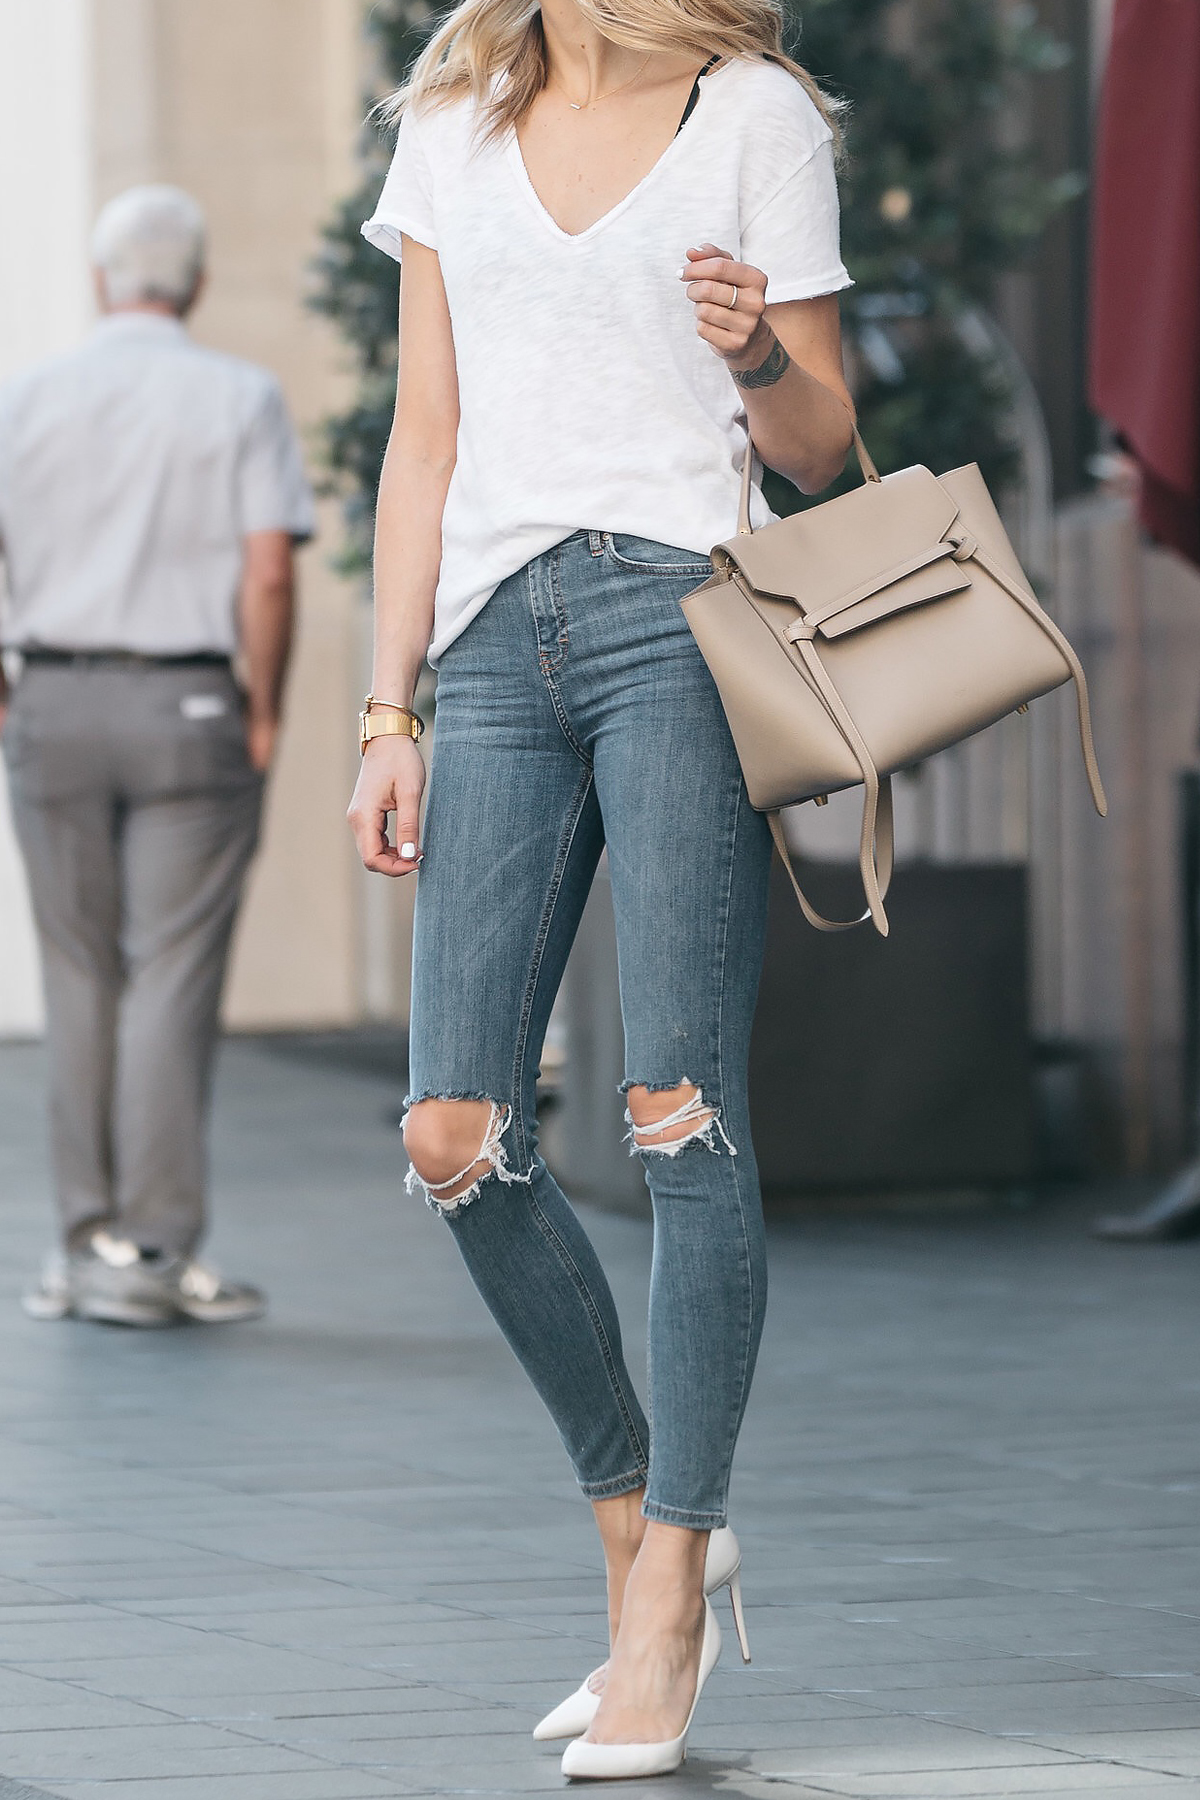 Jeans, High Heels and a White T-shirt